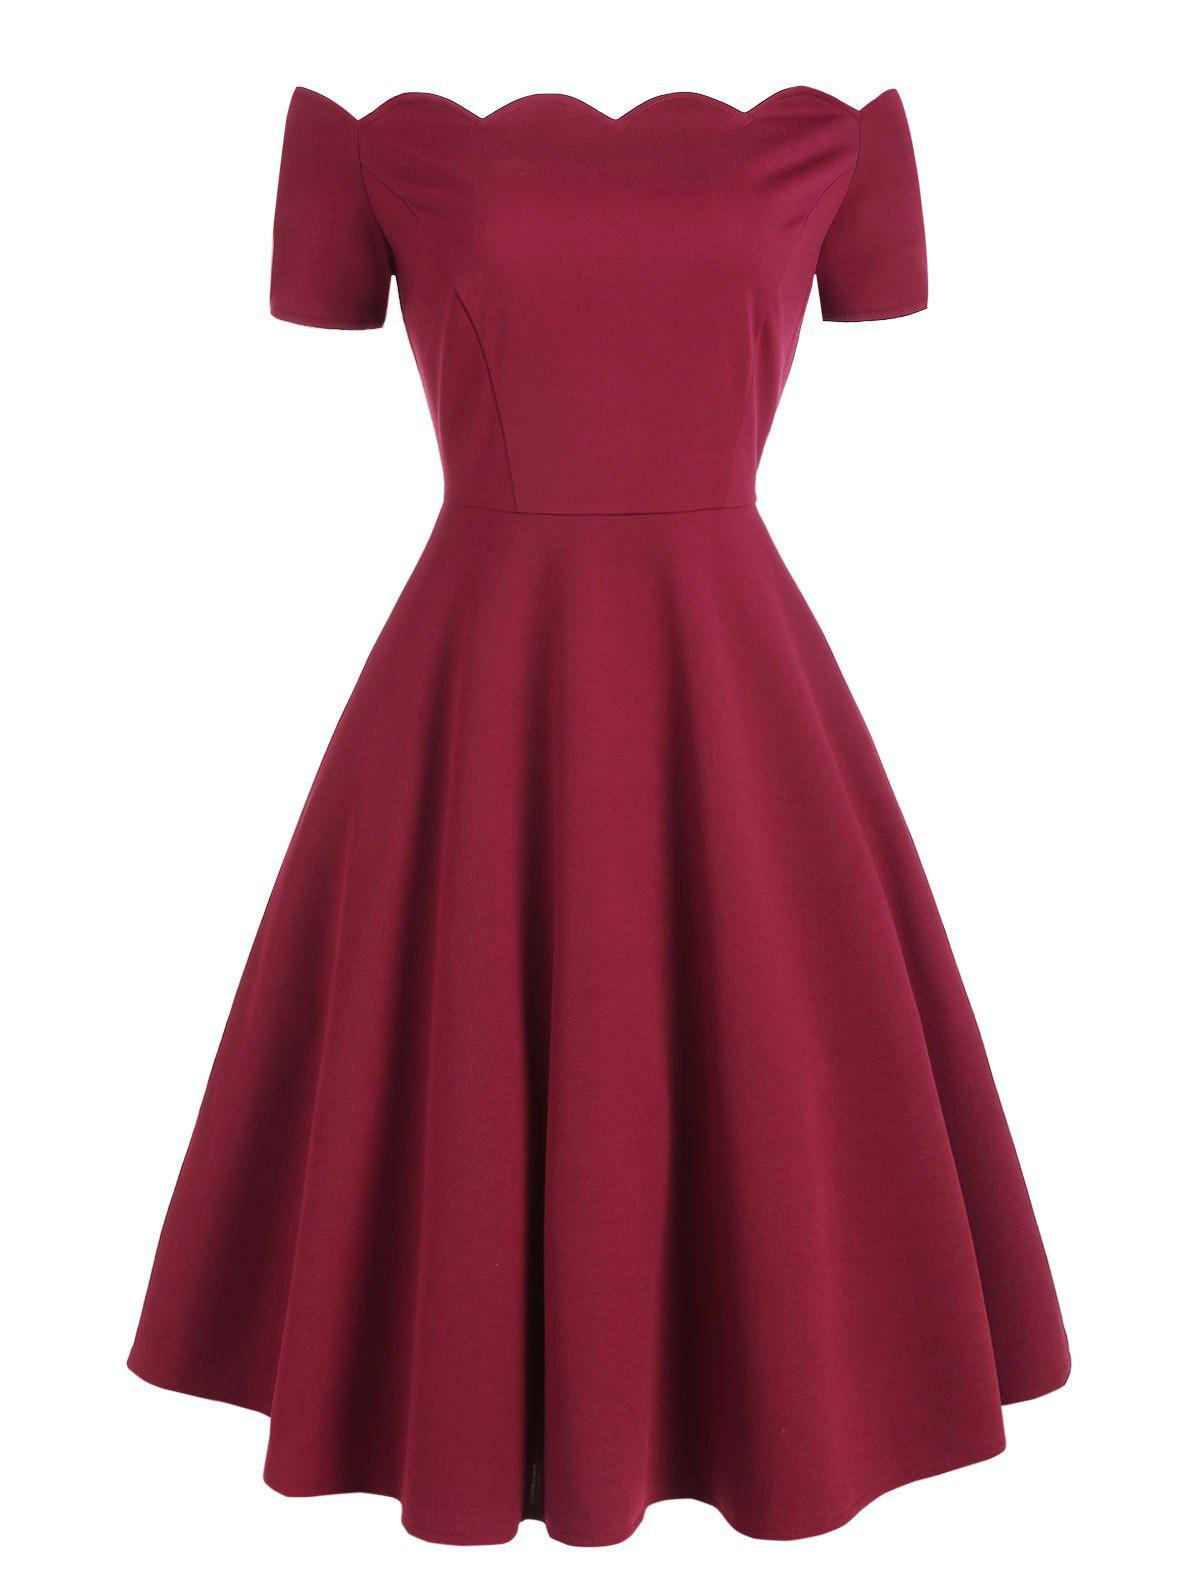 Short Sleeve Scalloped Rockabilly Style A Line Dress - RED WINE M